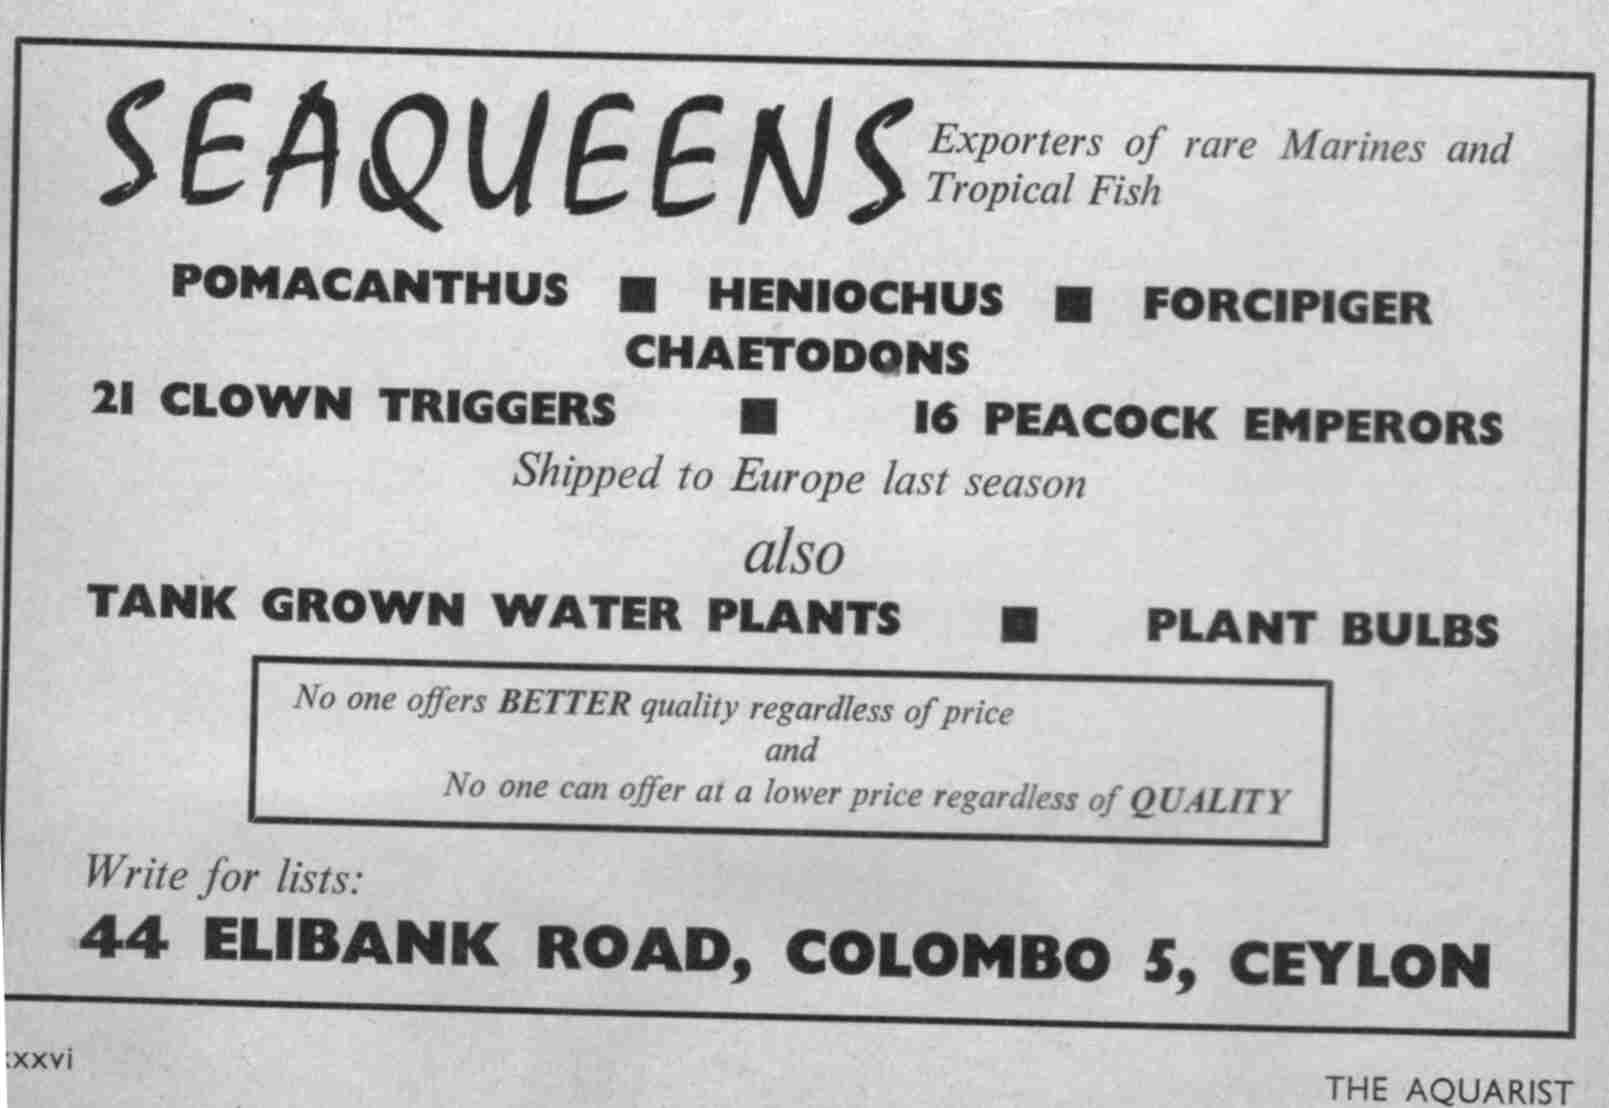 Advertisement from Seaqueens exporters (Hilary Guneratne ) in Columbo Sri Lanka